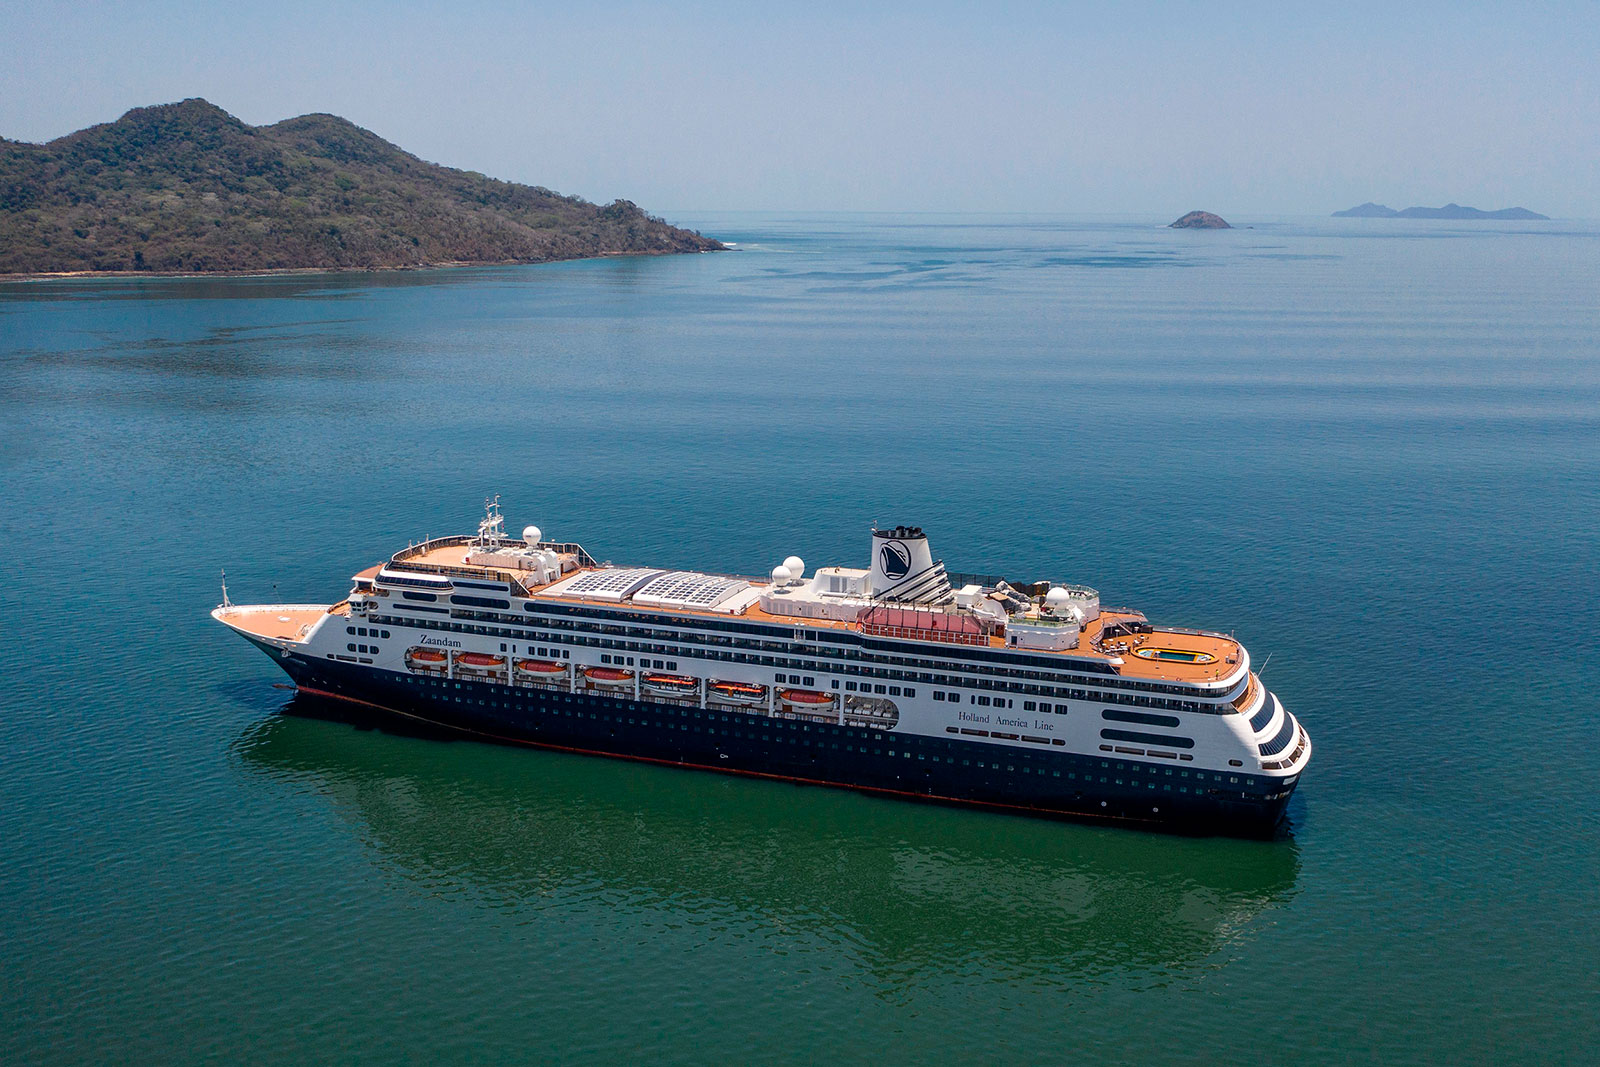 Holland America's Zaandam cruise ship enters Panama Bay on Friday, March 27.